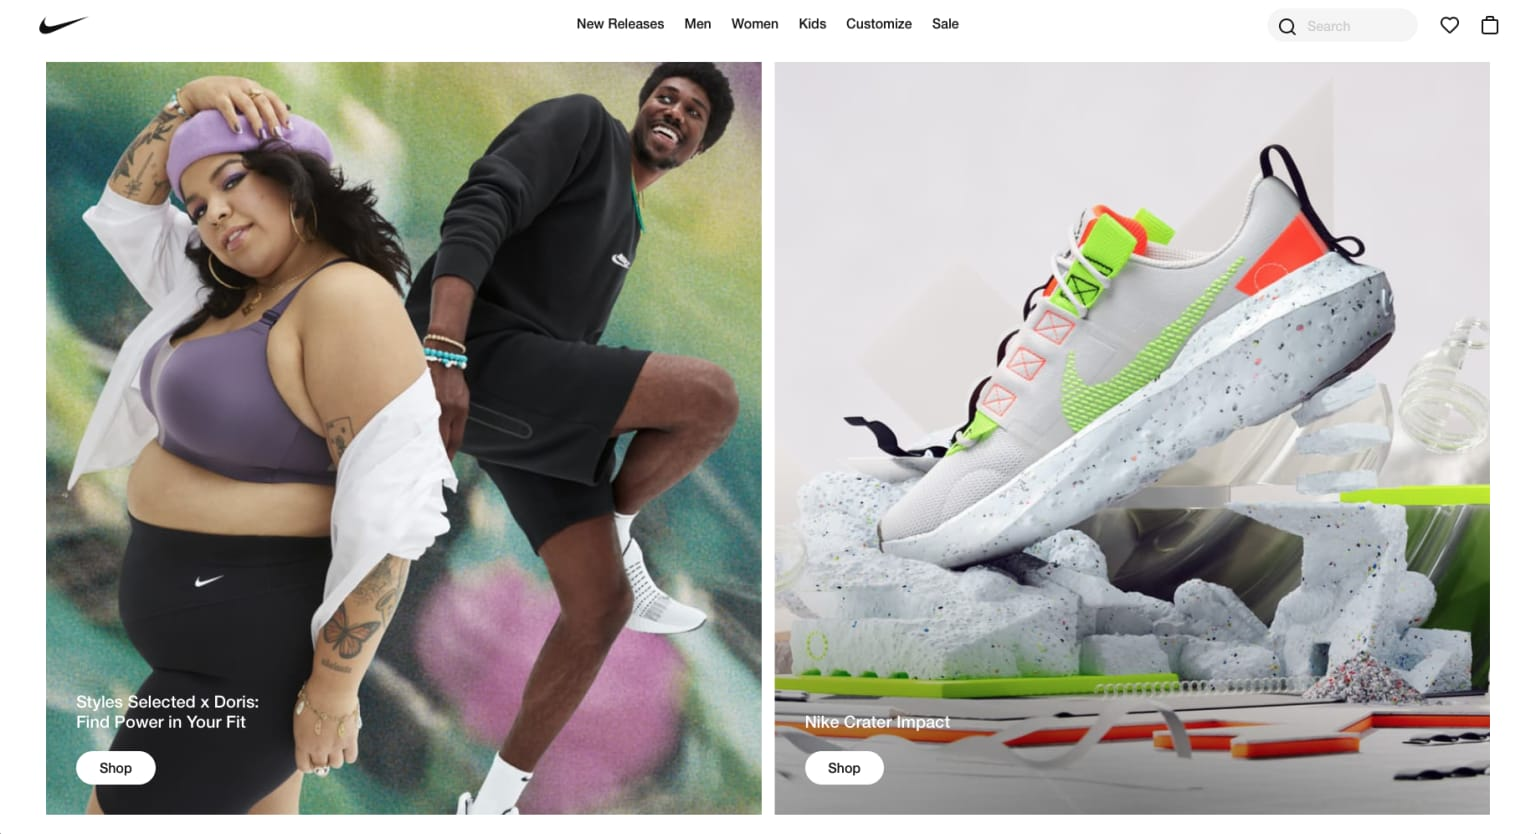 Nike Selected X 2020 Campaign